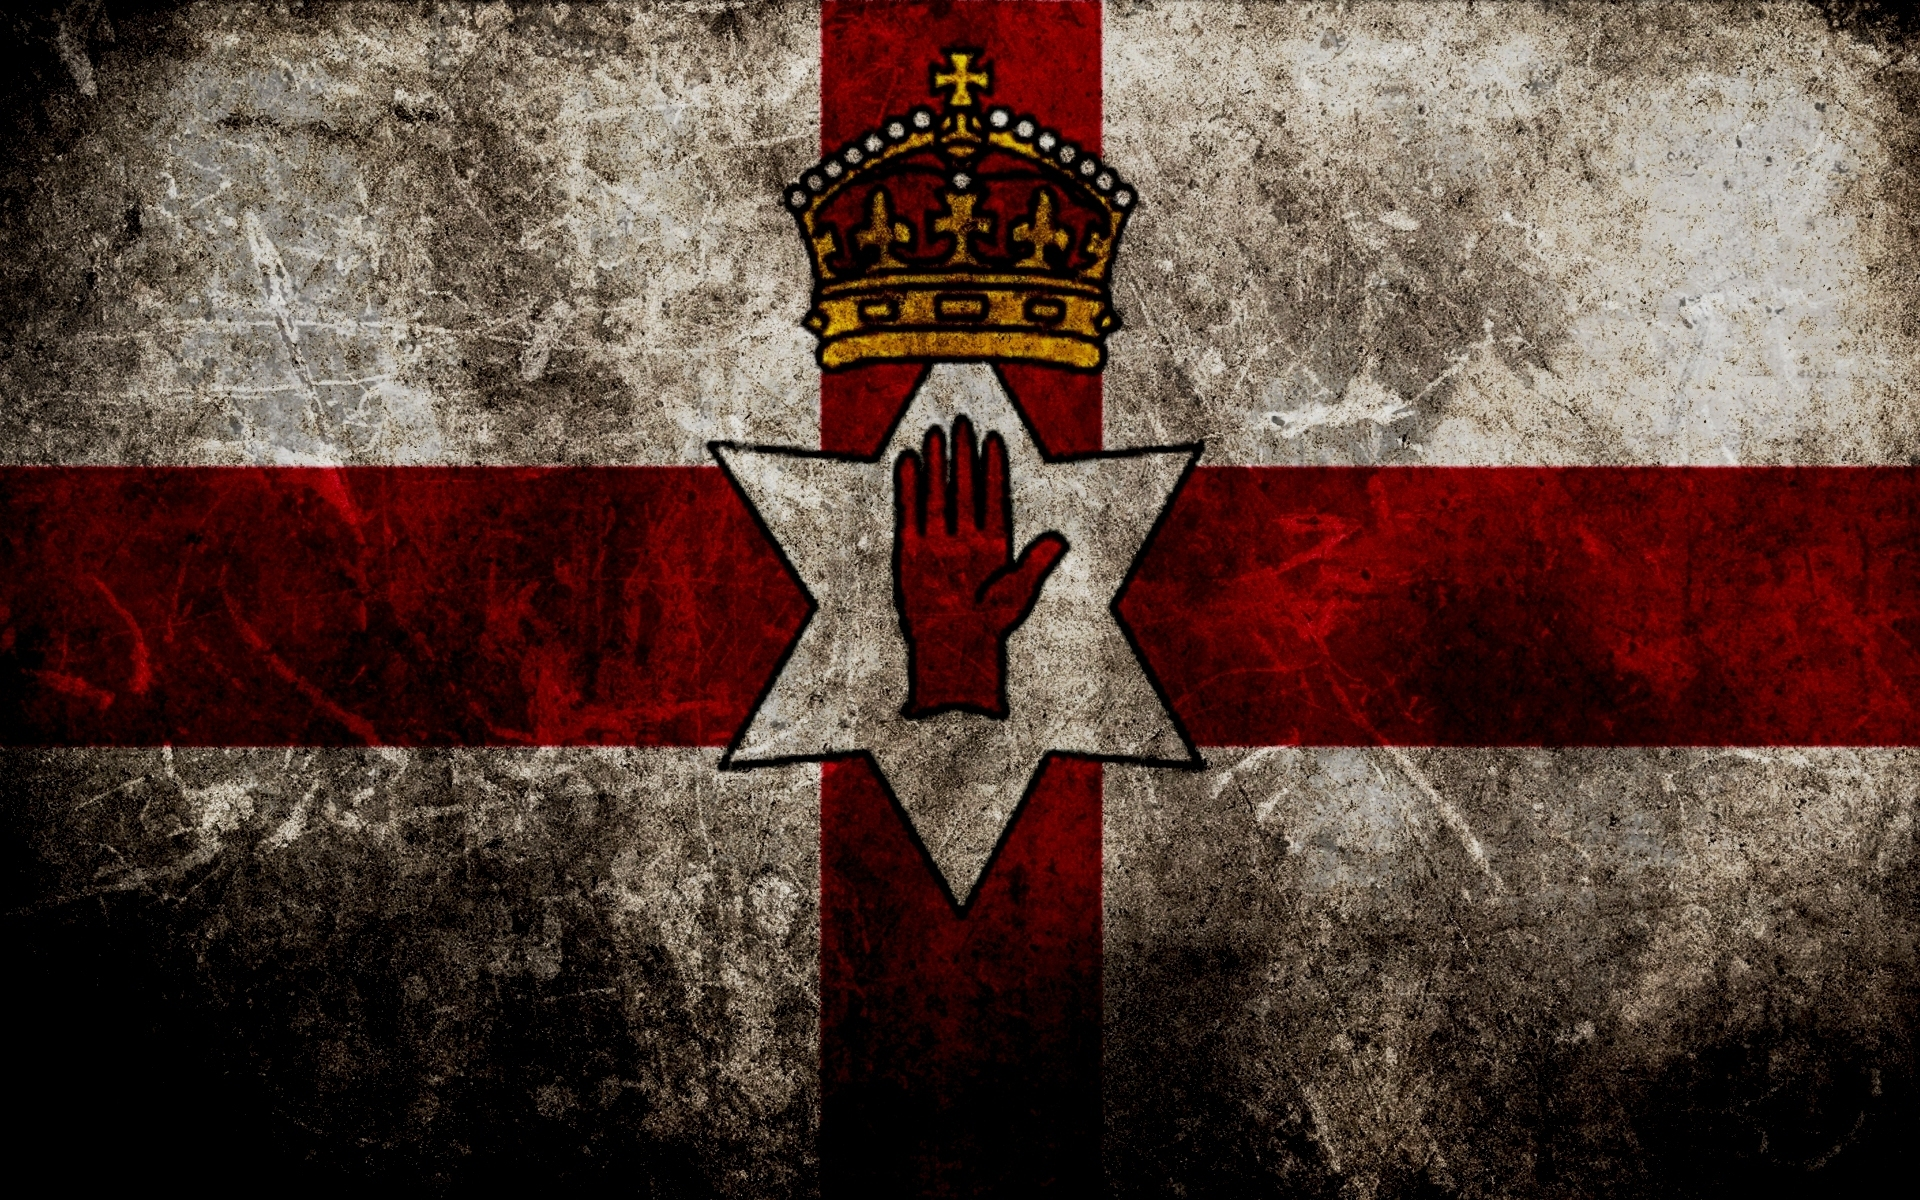 HD desktop wallpaper of the flag wallpaper of the Ulster 1920x1200